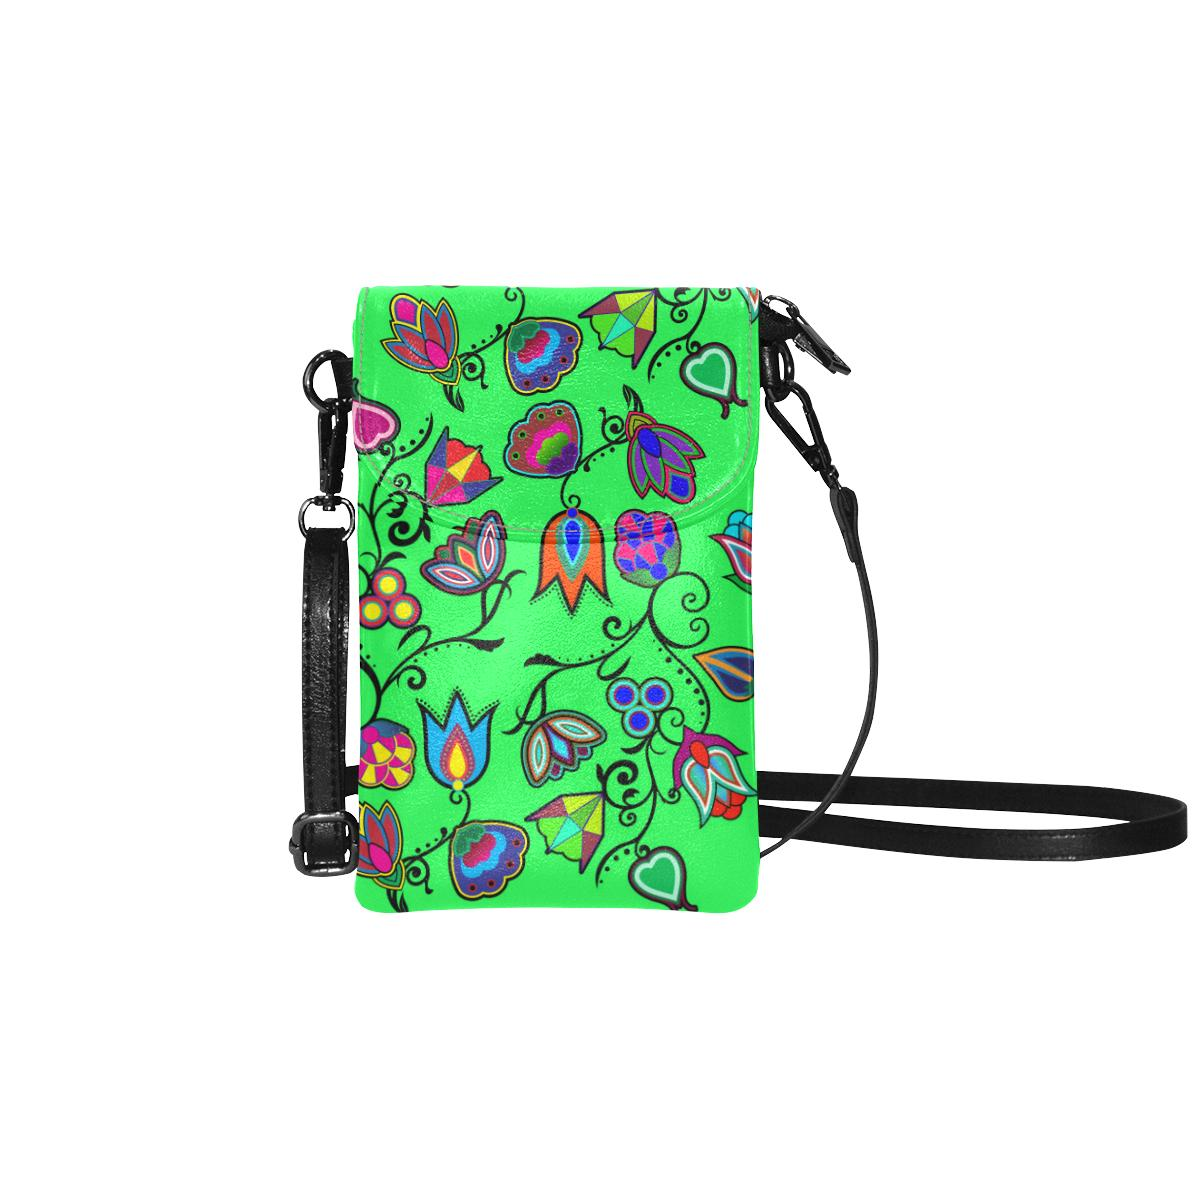 Indigenous Paisley - Green Small Cell Phone Purse (Model 1711) Small Cell Phone Purse (1711) e-joyer